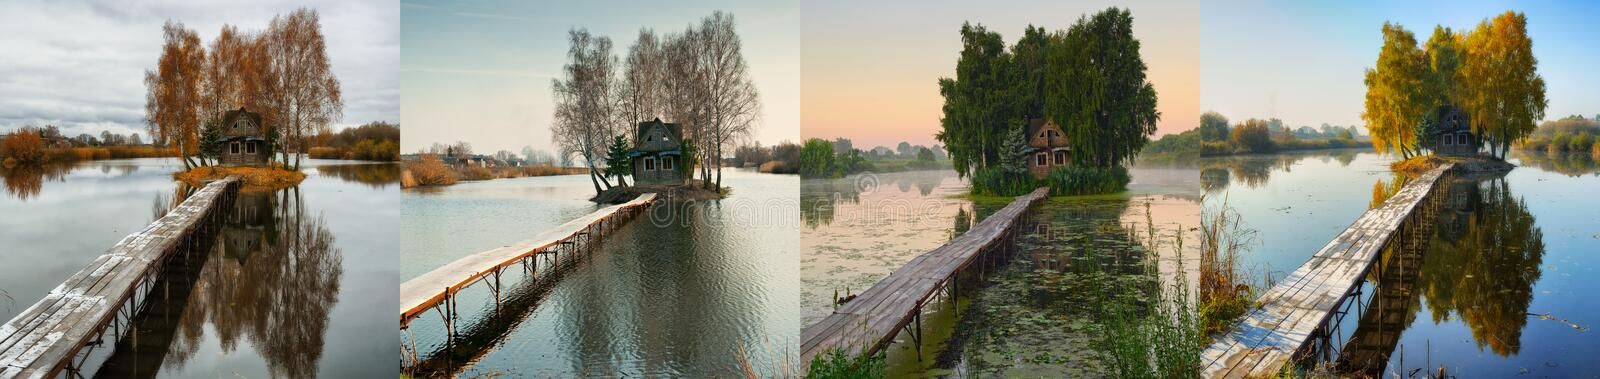 Small island. four seasons. a picturesque hut in all seasons. House on a small island. four seasons. a picturesque hut in all seasons royalty free stock photography